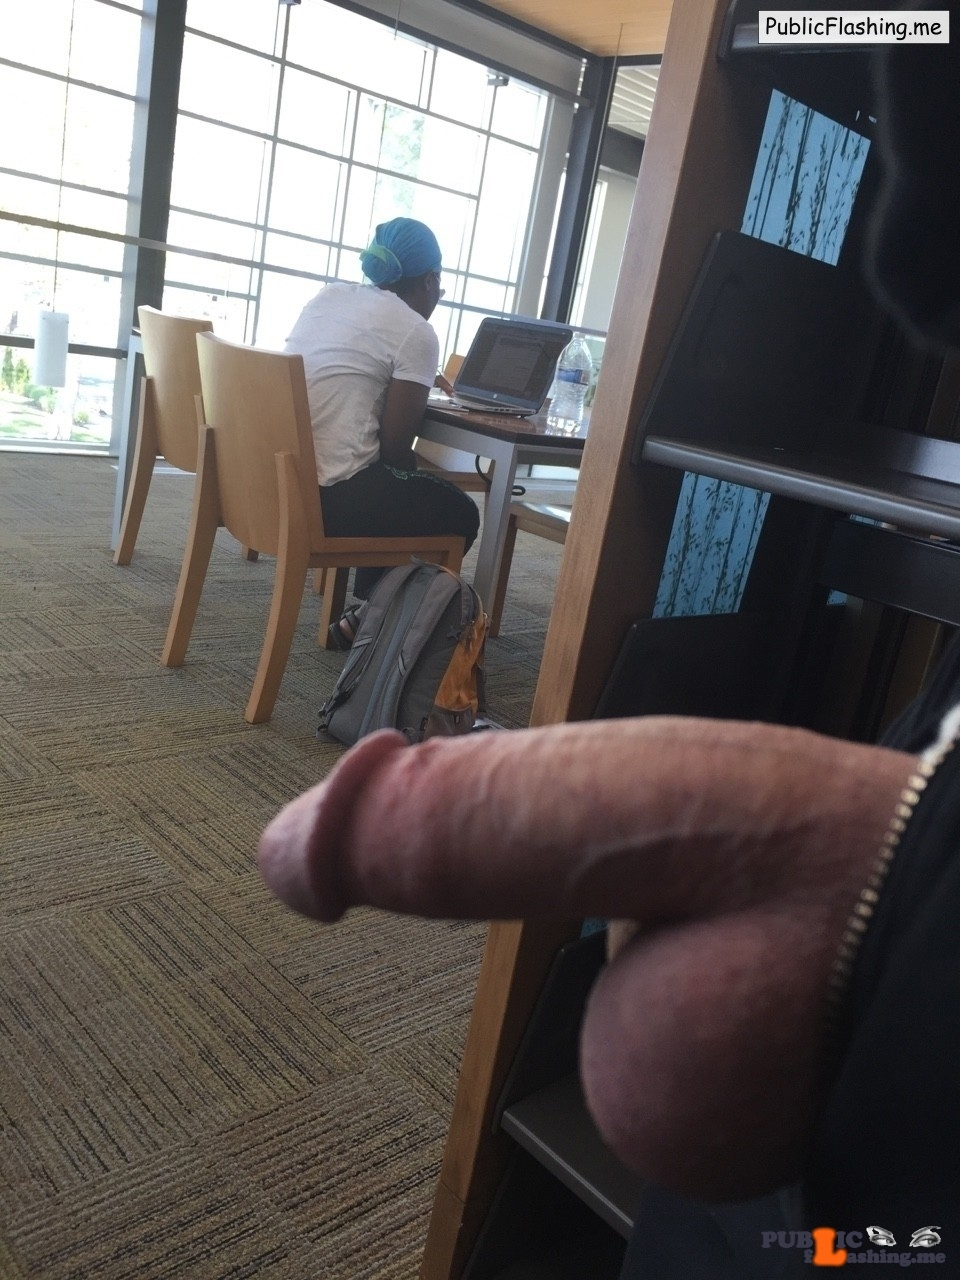 Mens cock on public showing gay first time